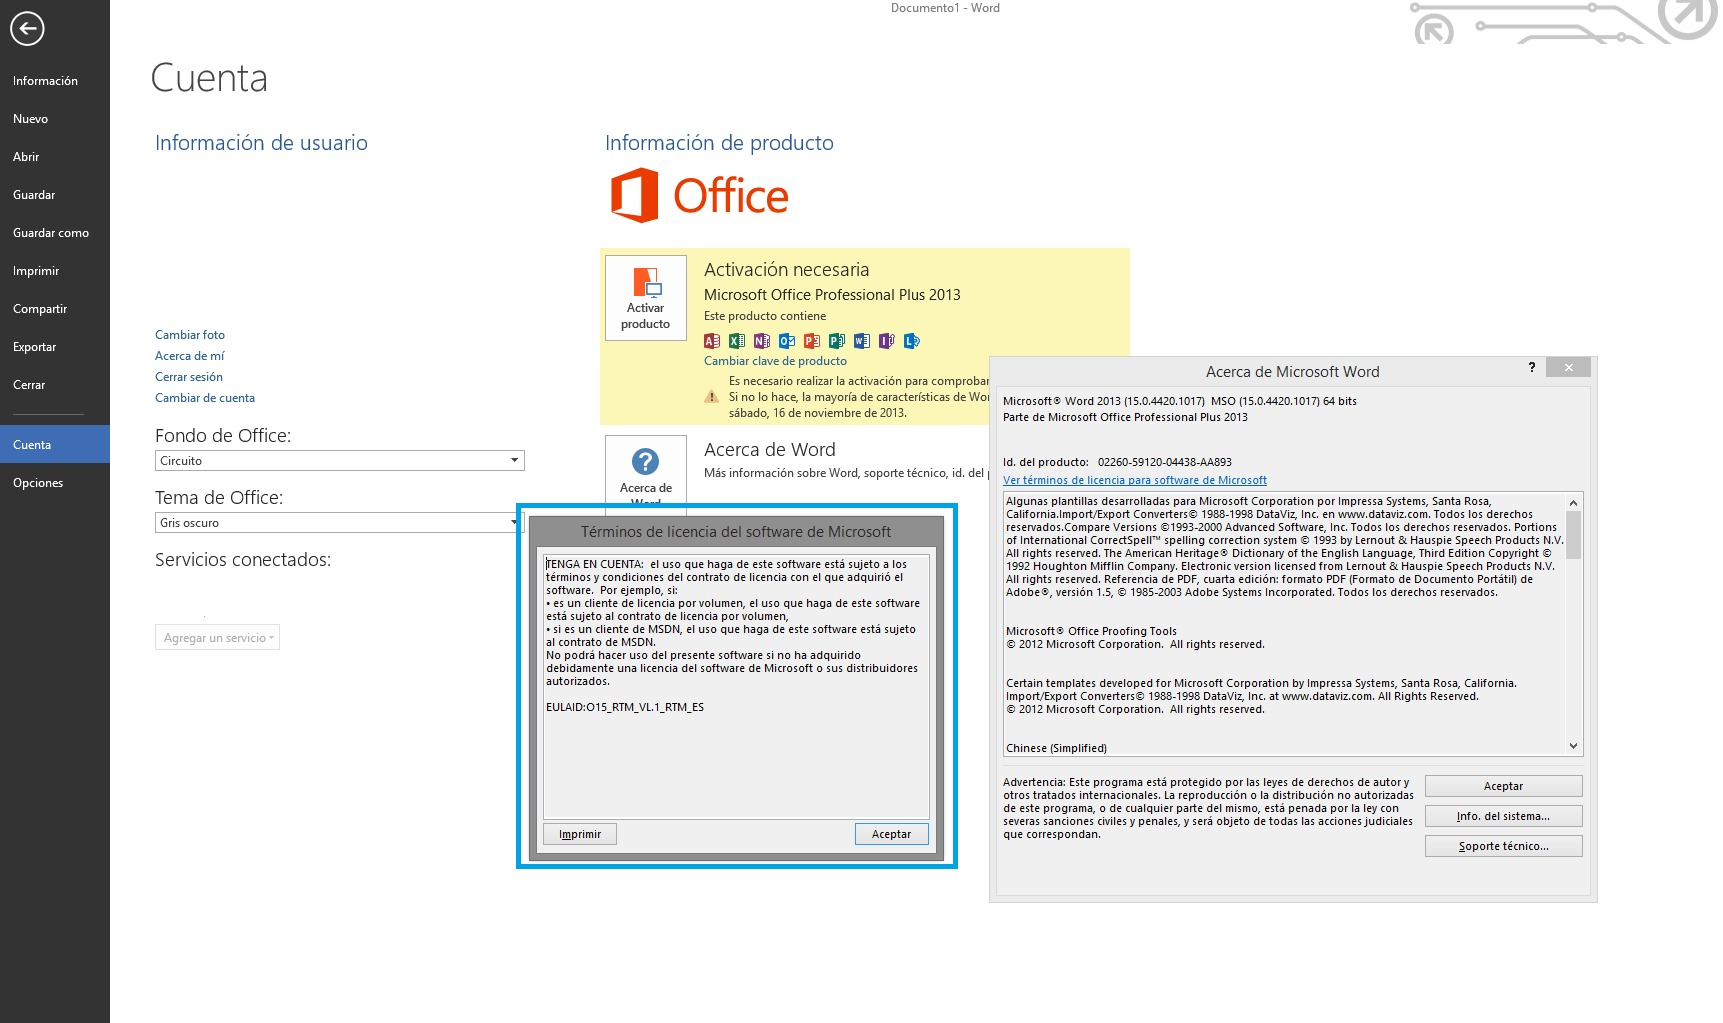 Windows 8.1 & Office 2013 VL Guia de Activacion KMS